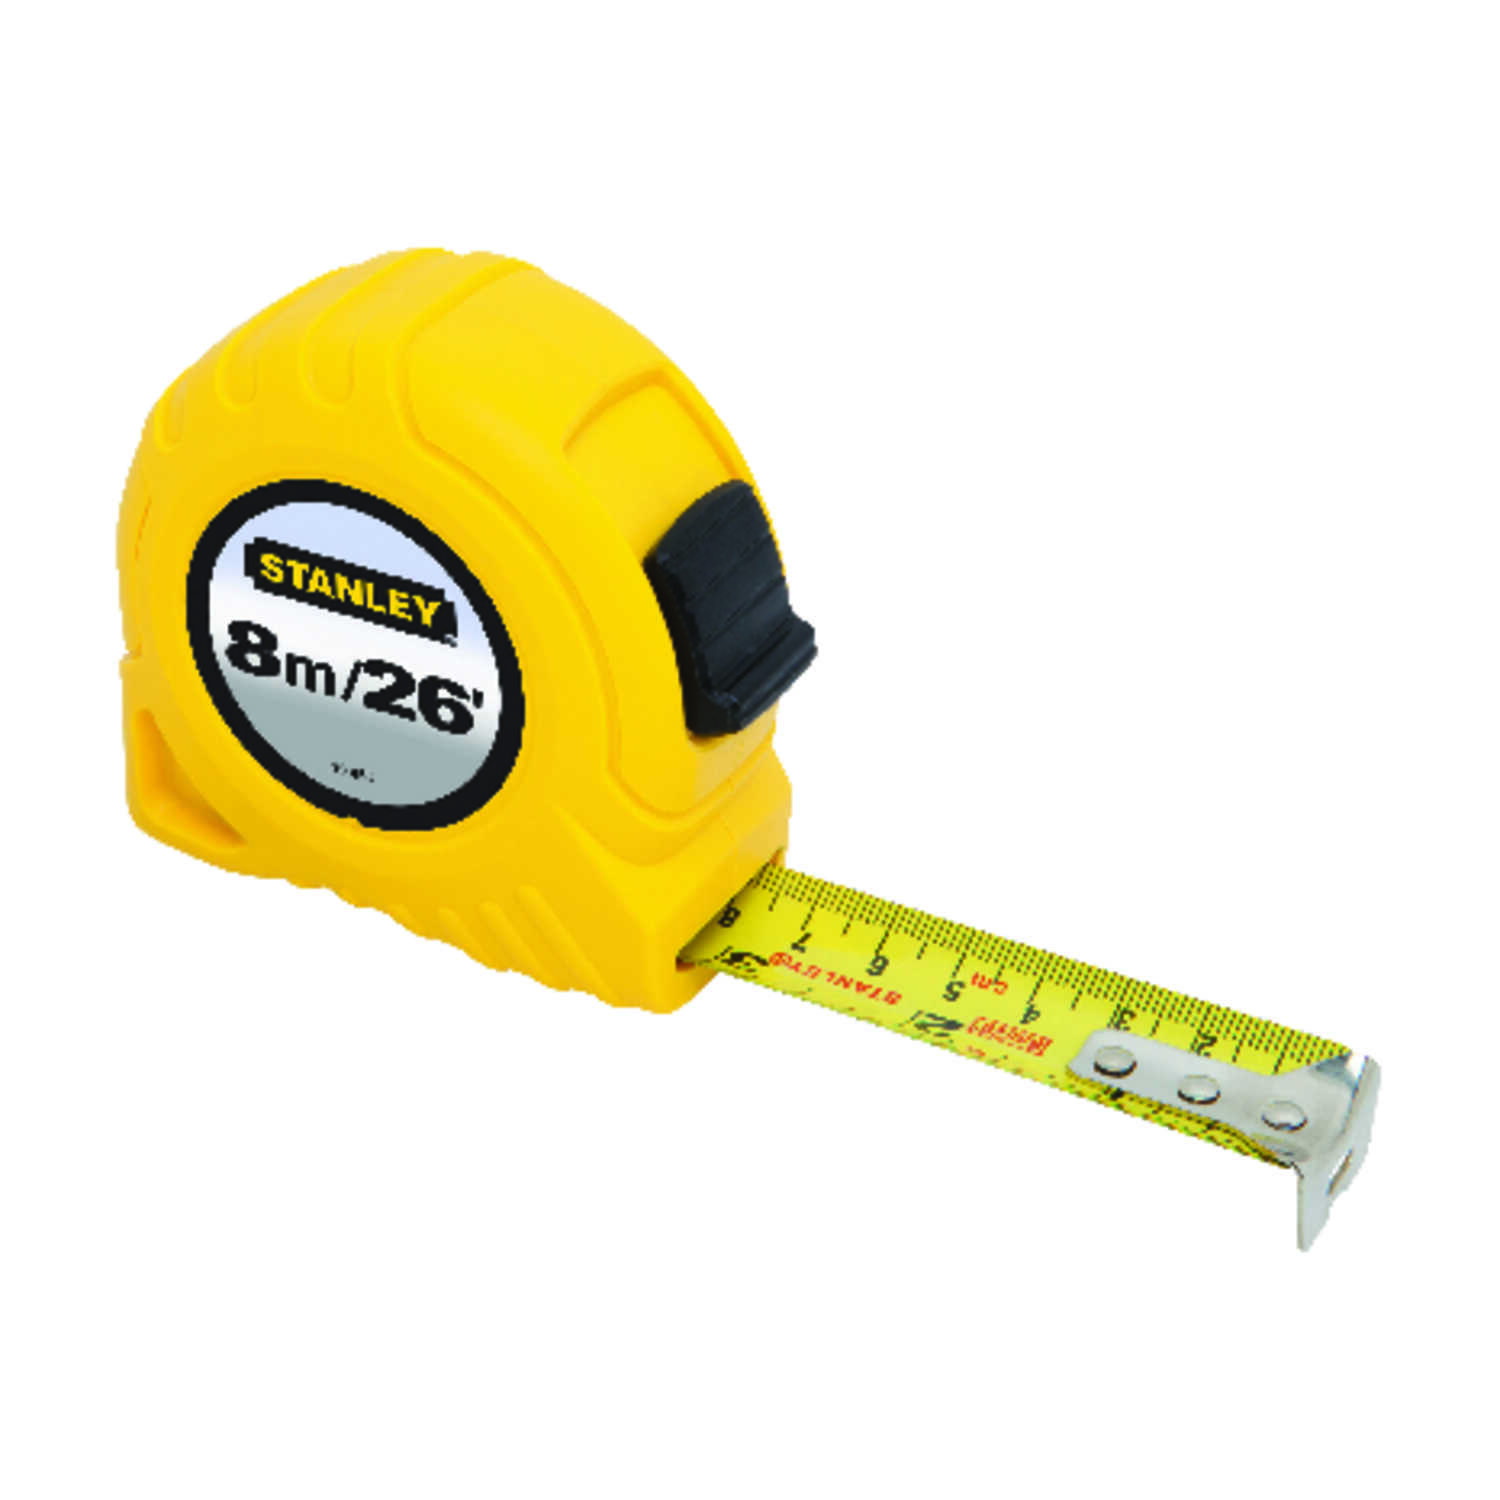 Stanley  1 in. W x 26 ft. L Tape Measure  Yellow  1 pk